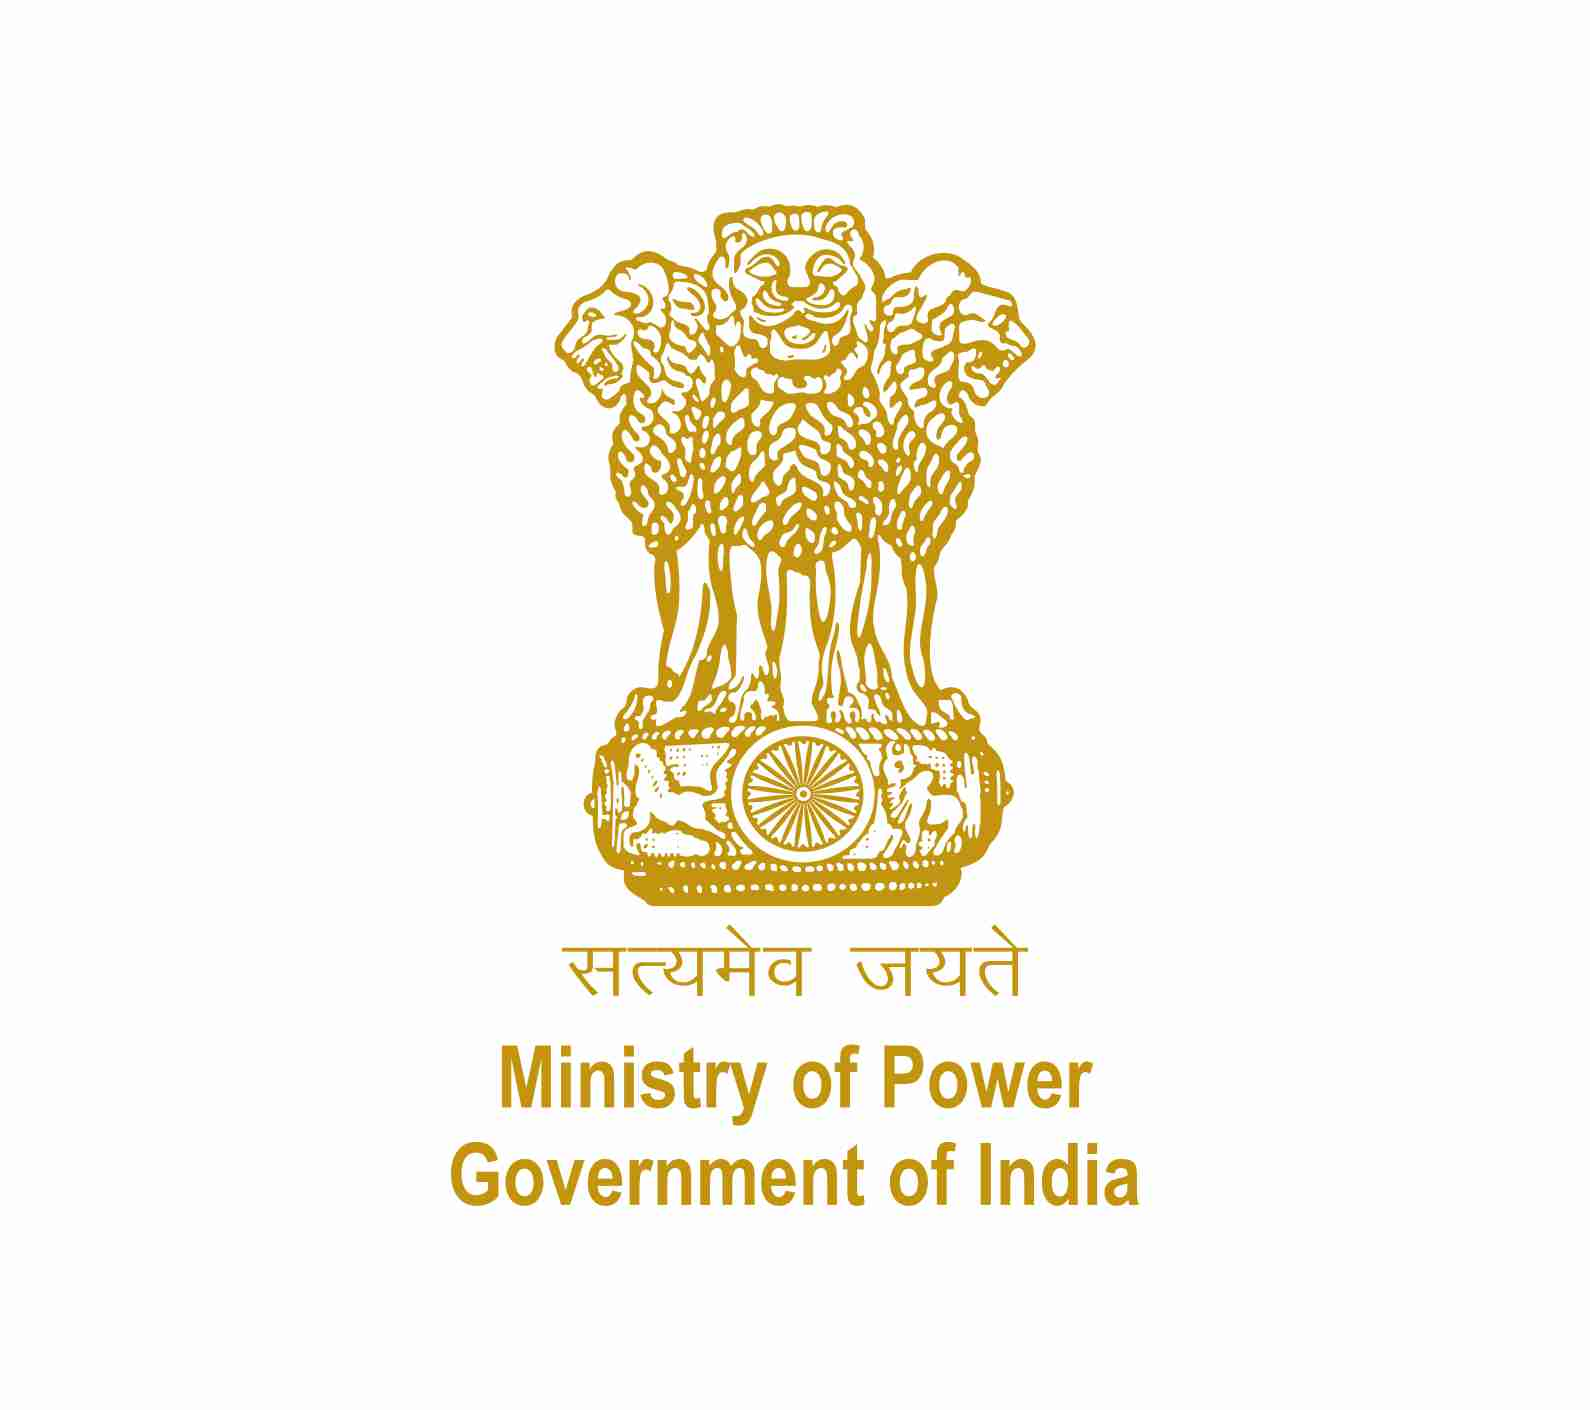 Plant-wise details of All India RE Installed Capacity